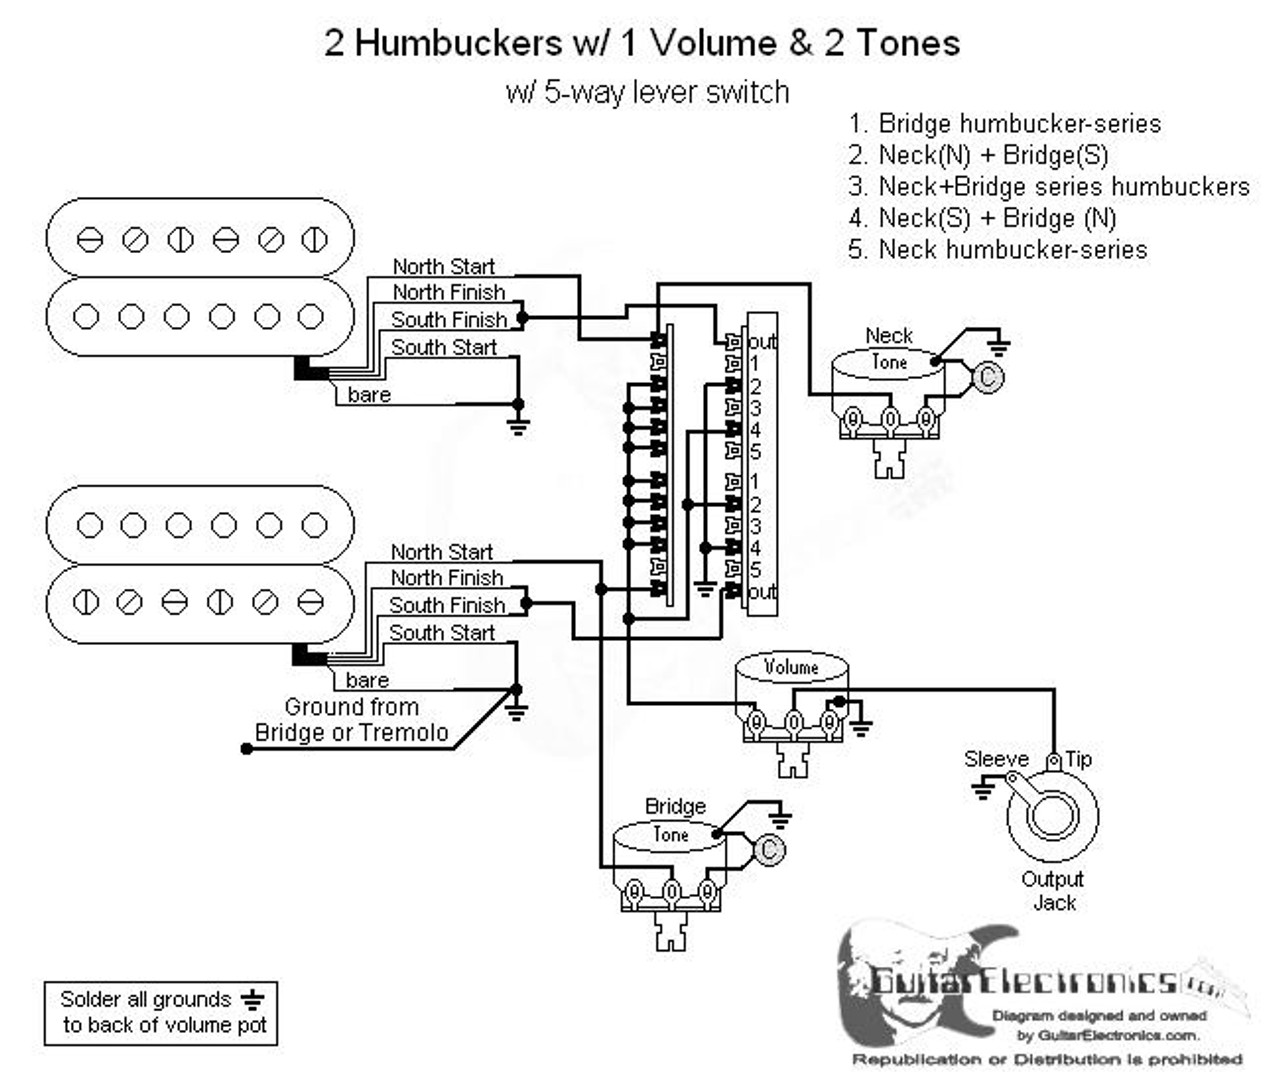 2 Humbuckers/5-Way Lever Switch/1 Volume/2 Tones/05 | Two Humbucker W 1 Volume And 2 Tone 5 Way Switch Wiring Diagram |  | Guitar Electronics